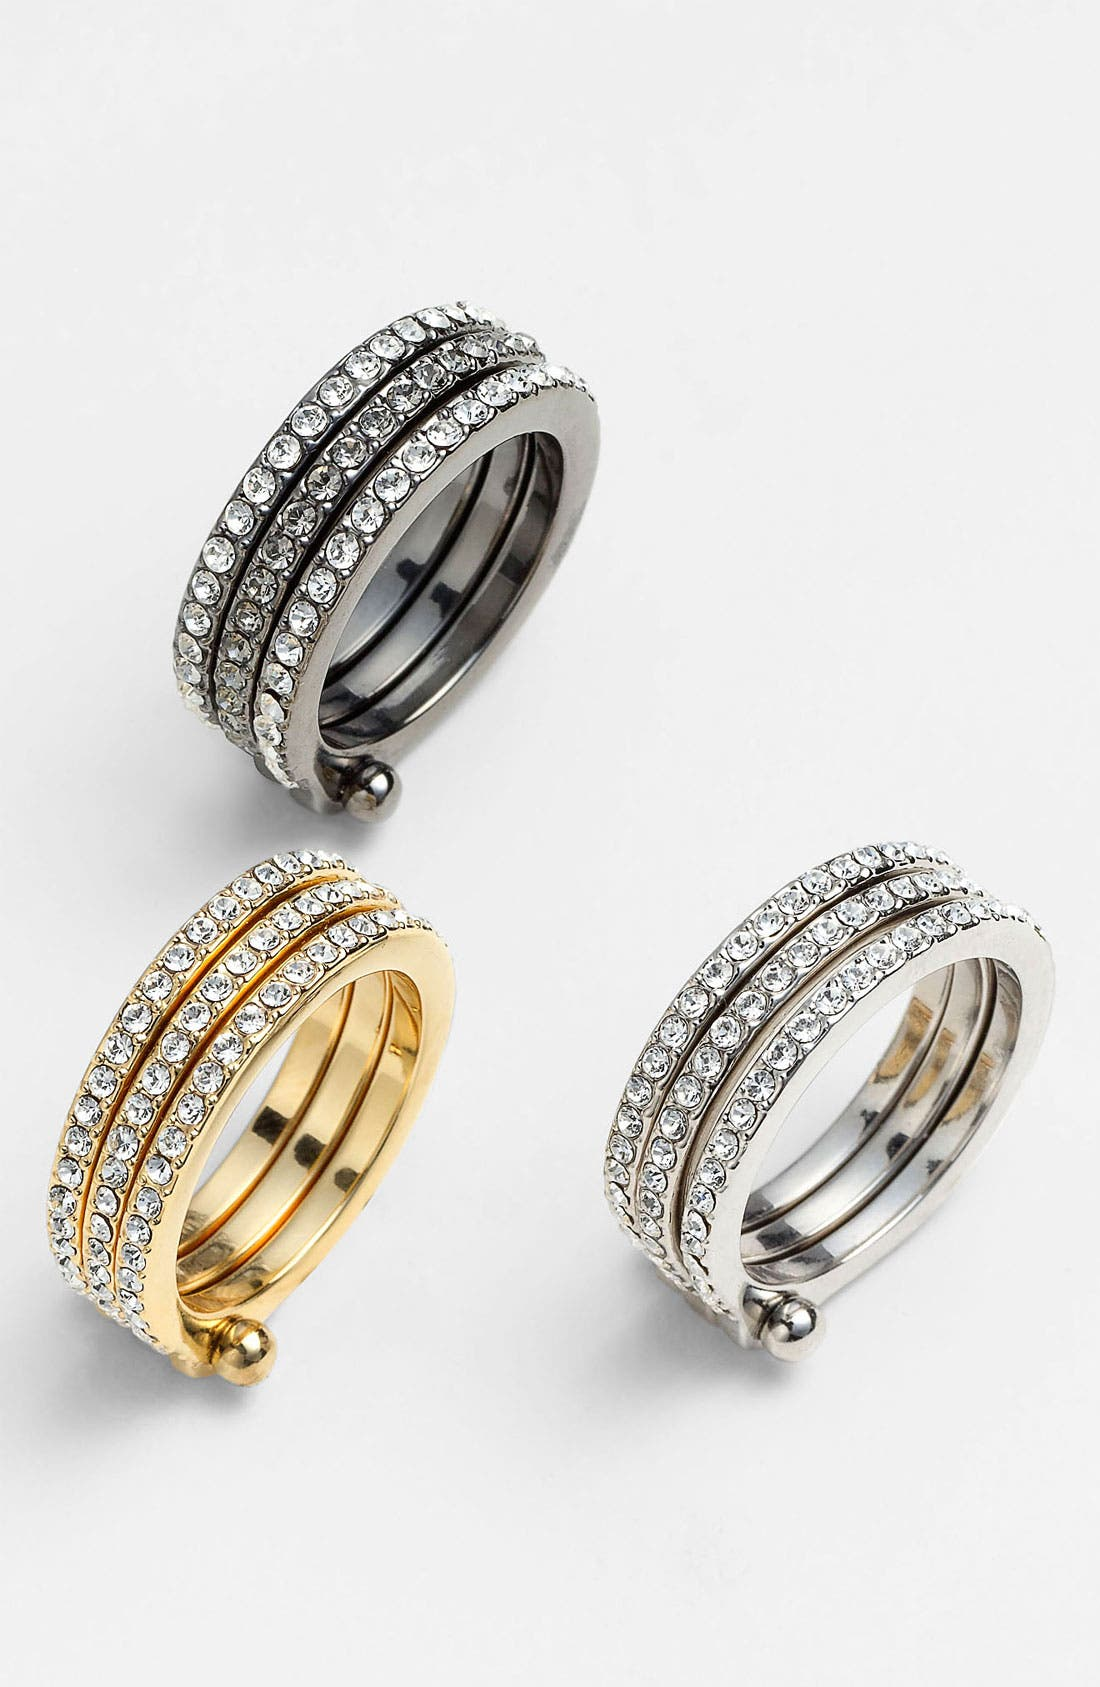 Main Image - Givenchy Stack Ring